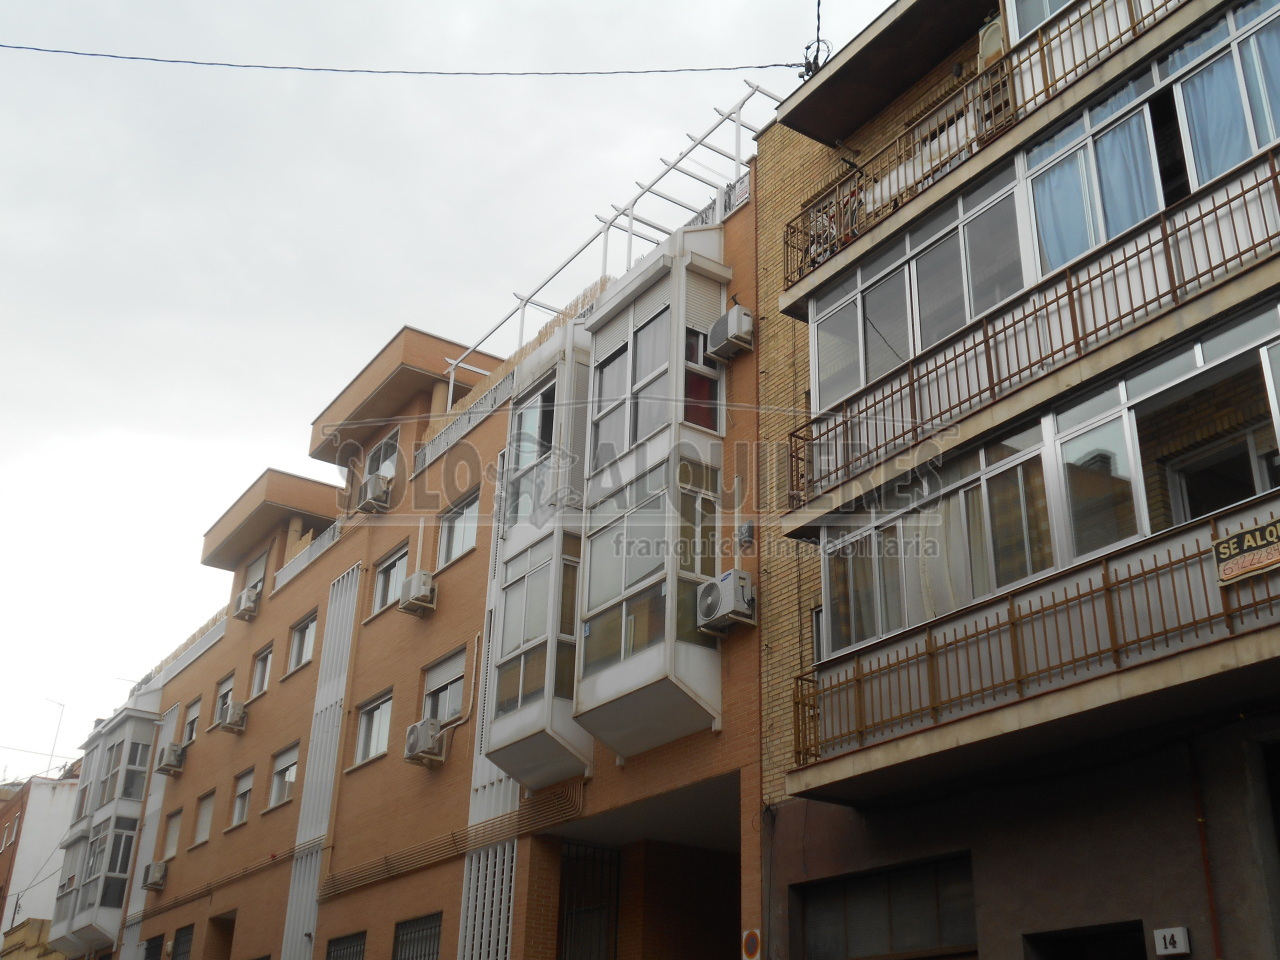 flat-for-rent-in-chisperos-madrid-215046439